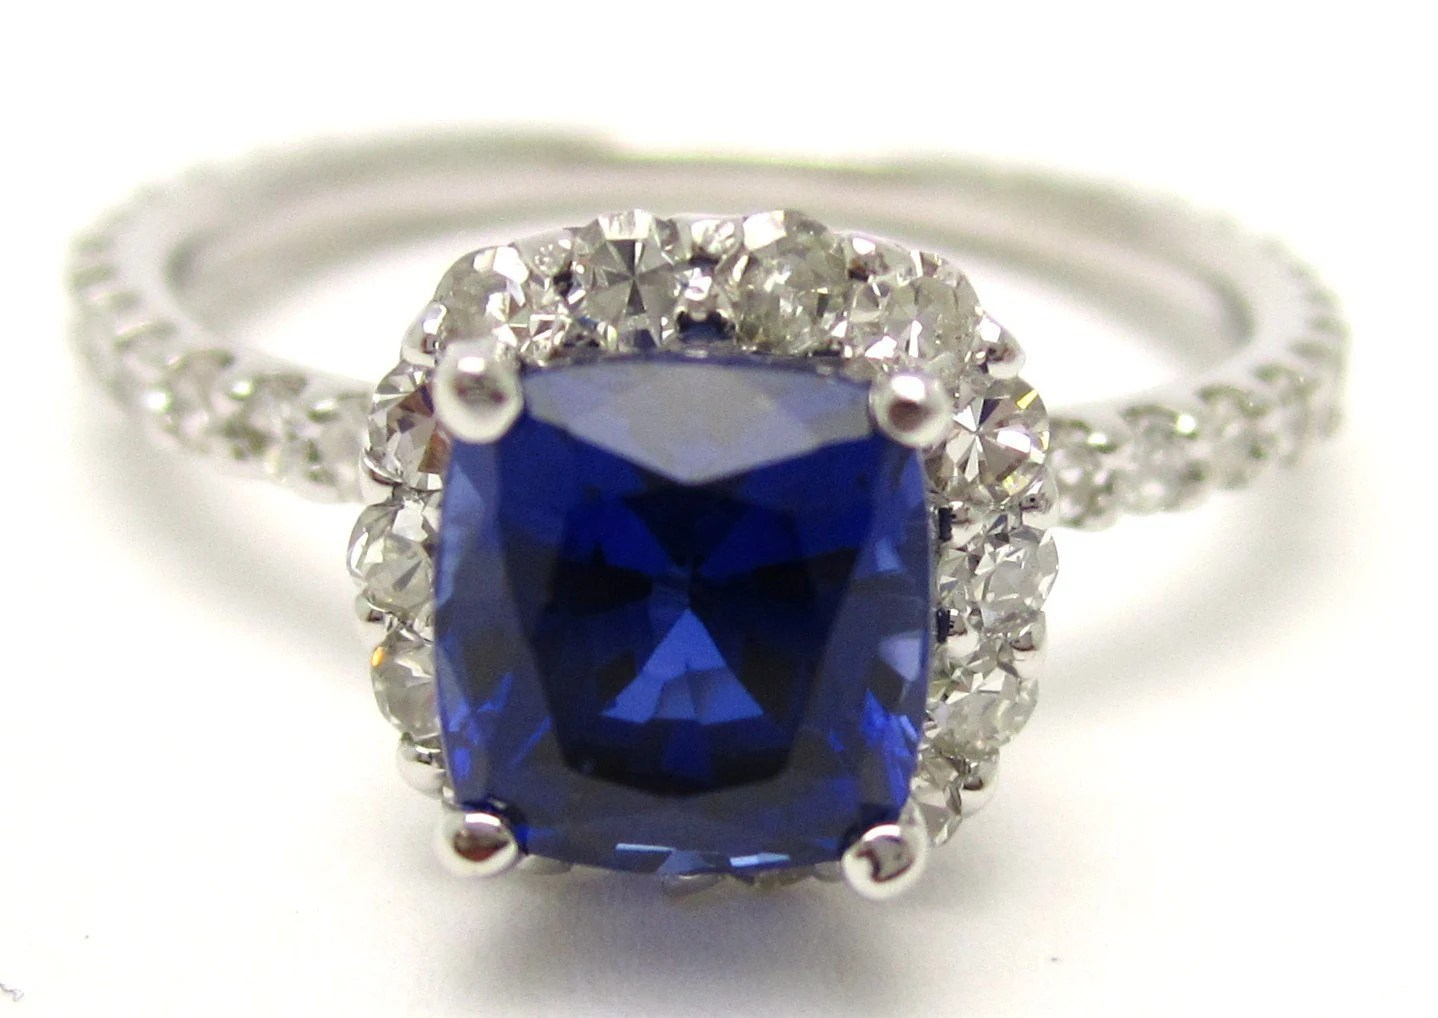 harry winston harry winston wedding rings 2 10ctw faceted blue sapphire diamonds engagement ring HARRY WINSTON style SA